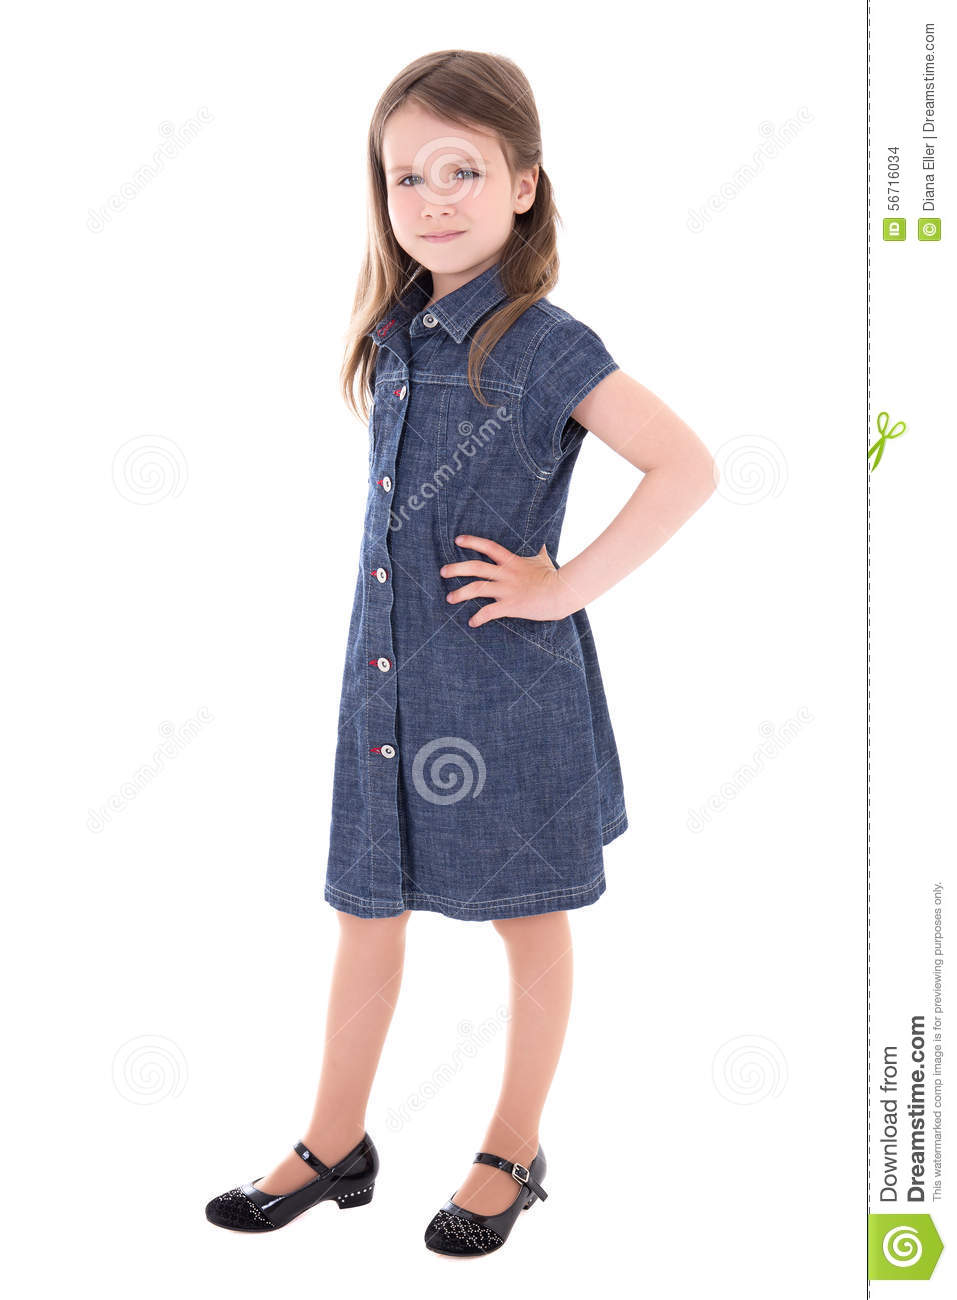 3c22177a261 Cute Little Girl In Denim Dress Isolated On White Stock Photo ...